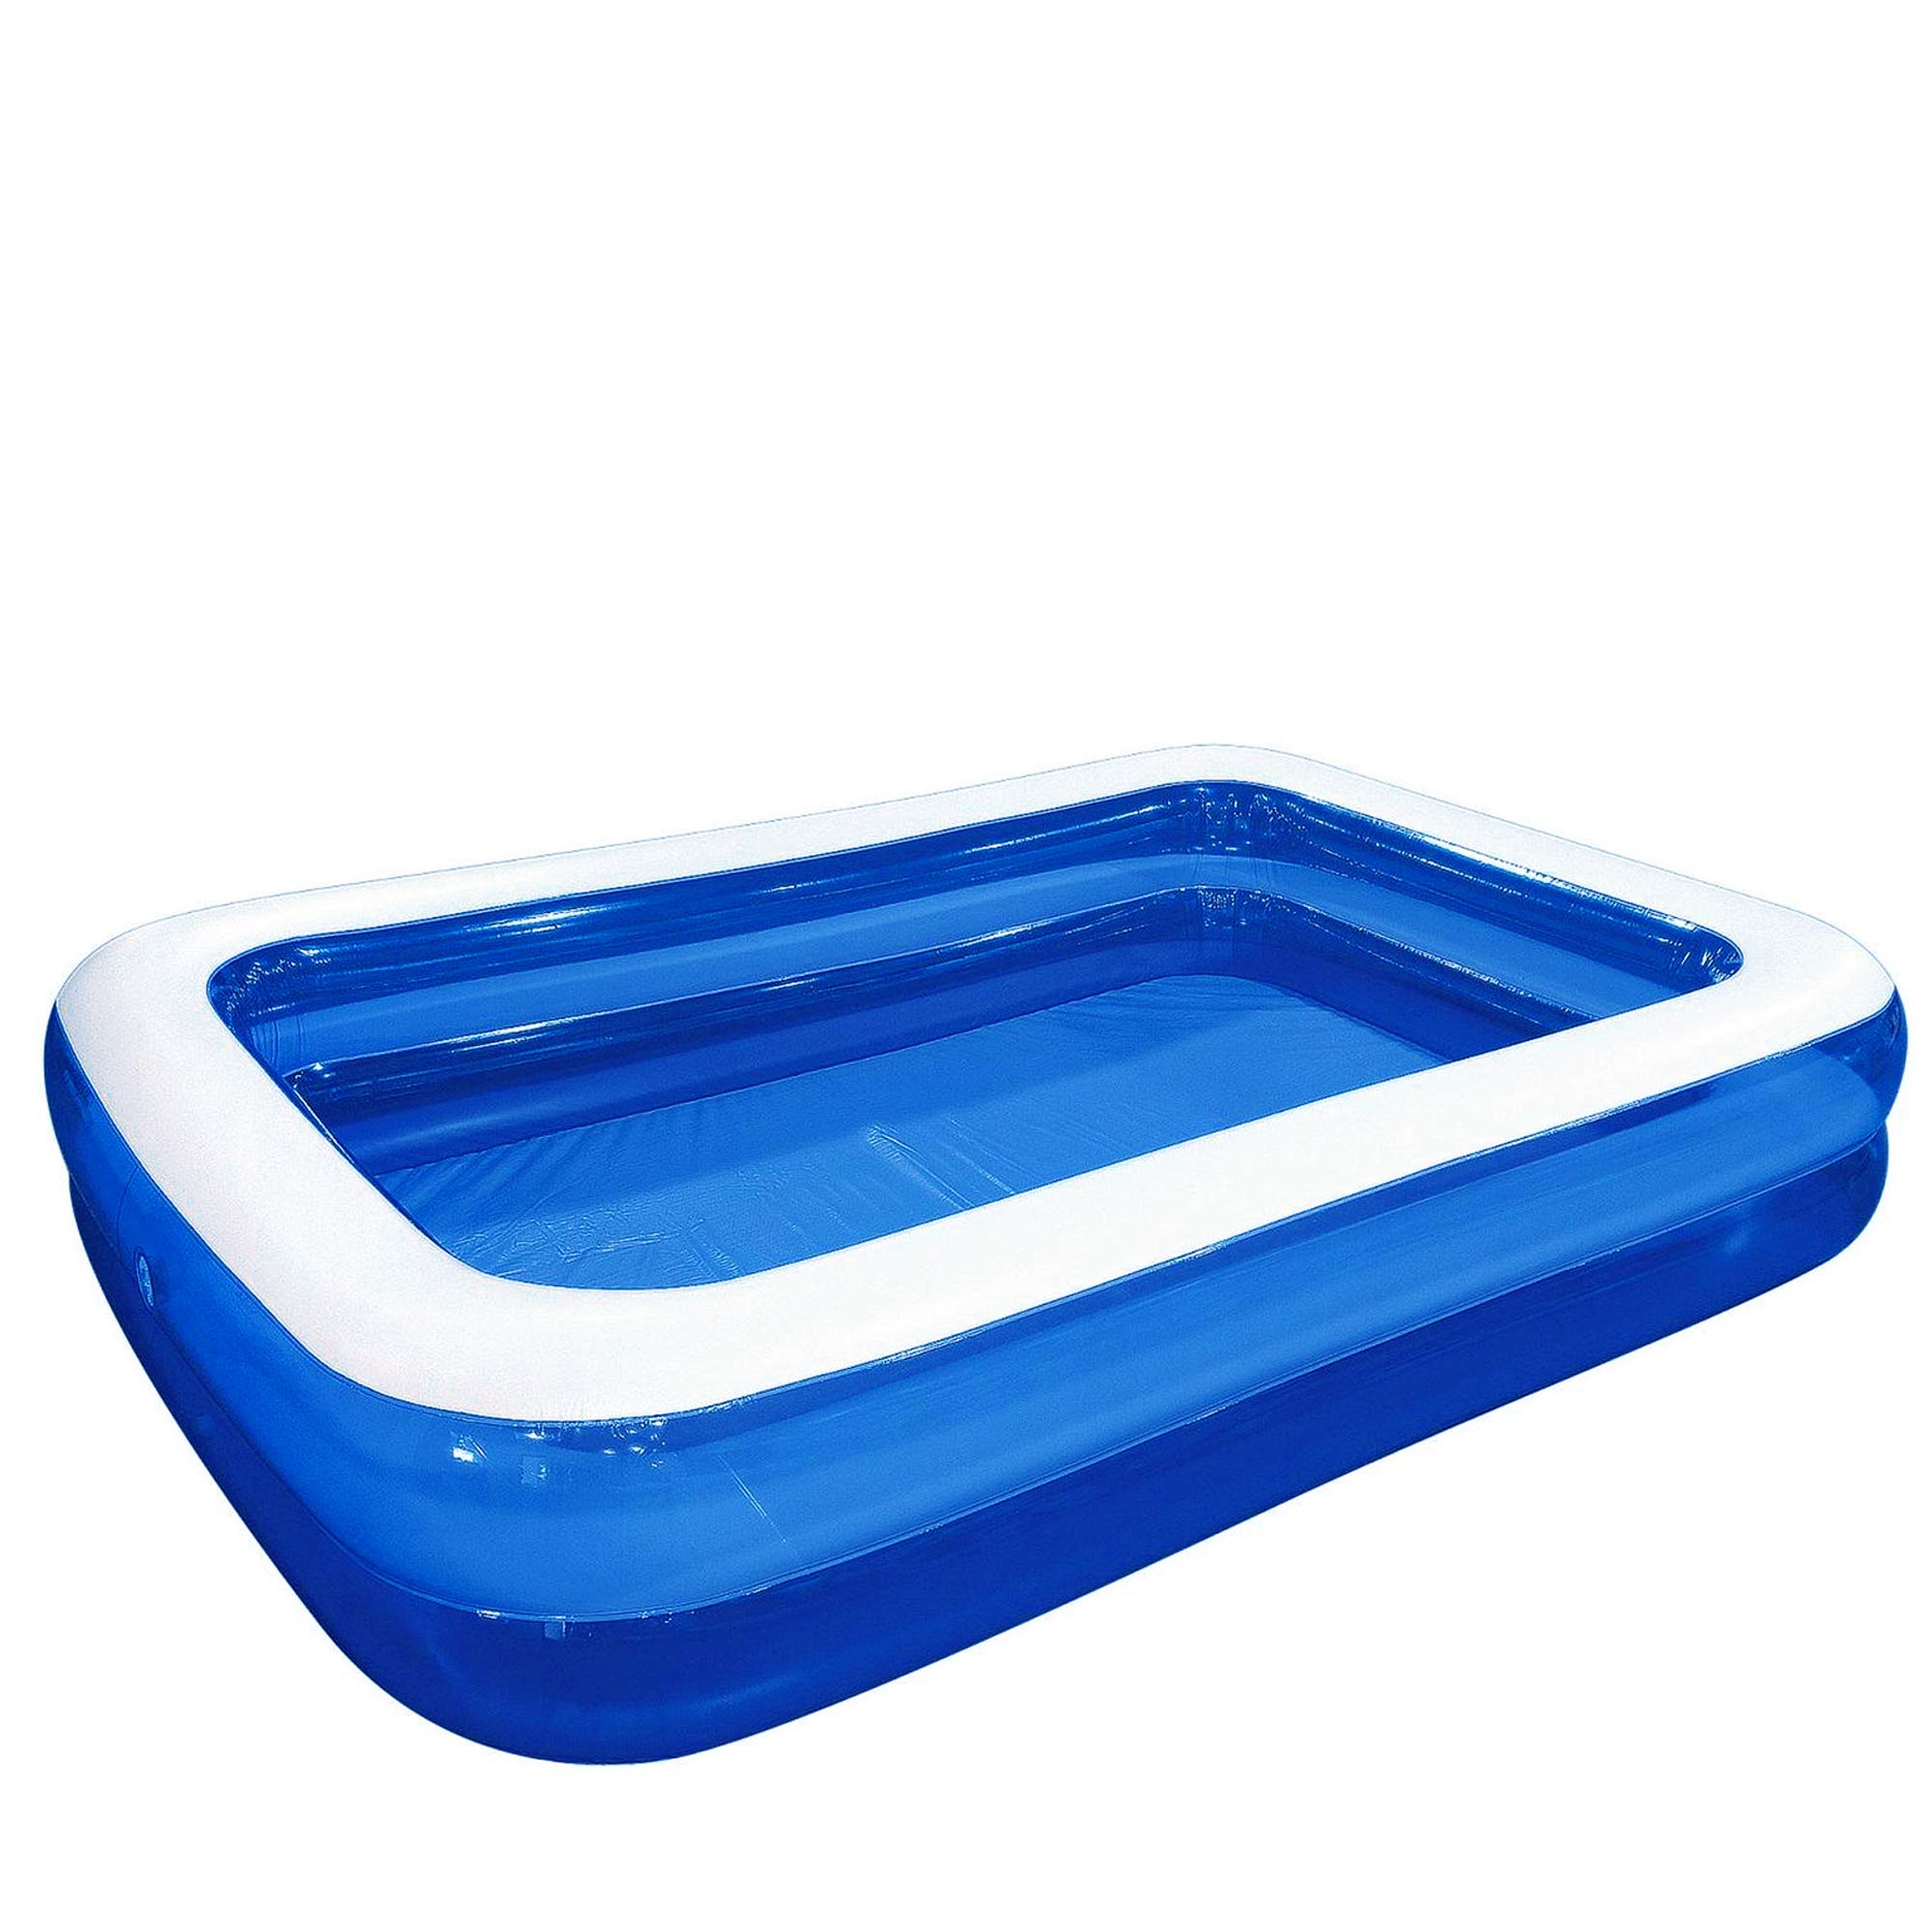 8.5' Blue and White Inflatable Rectangular Swimming Pool